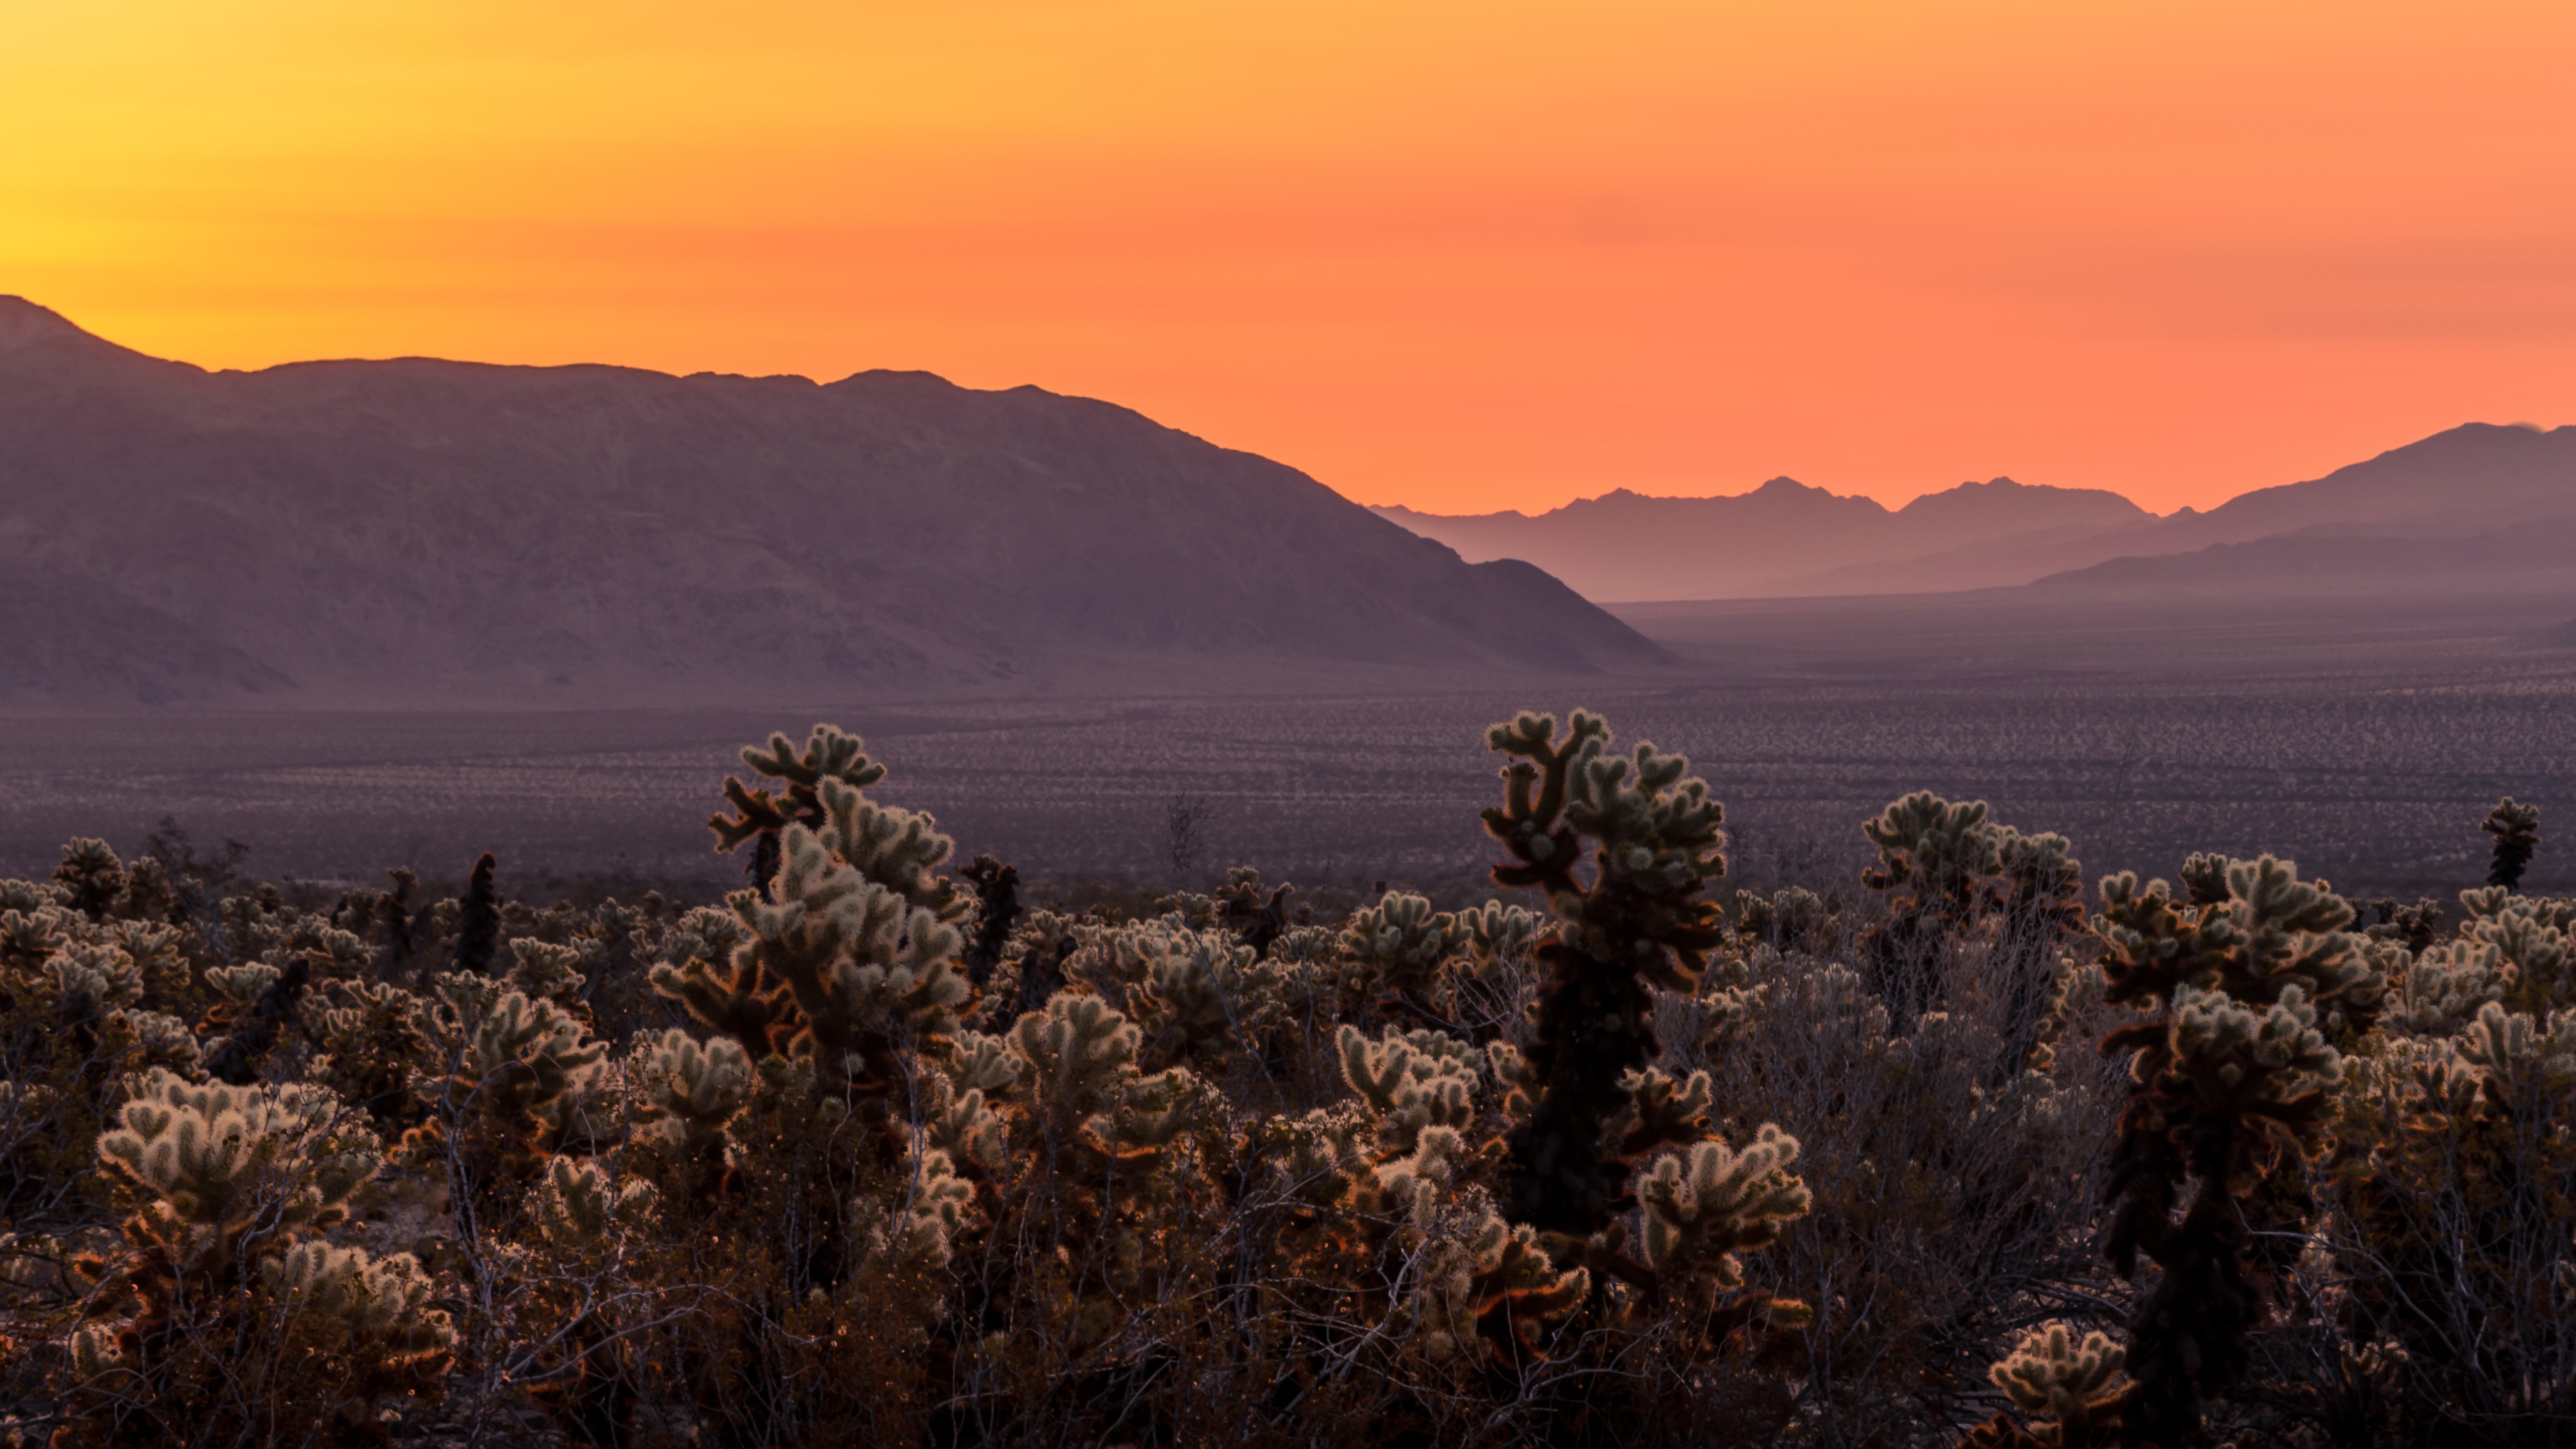 Sunrise In Joshua Tree National Park Wallpaper Hd Nature 4k Wallpapers Images Photos And Background